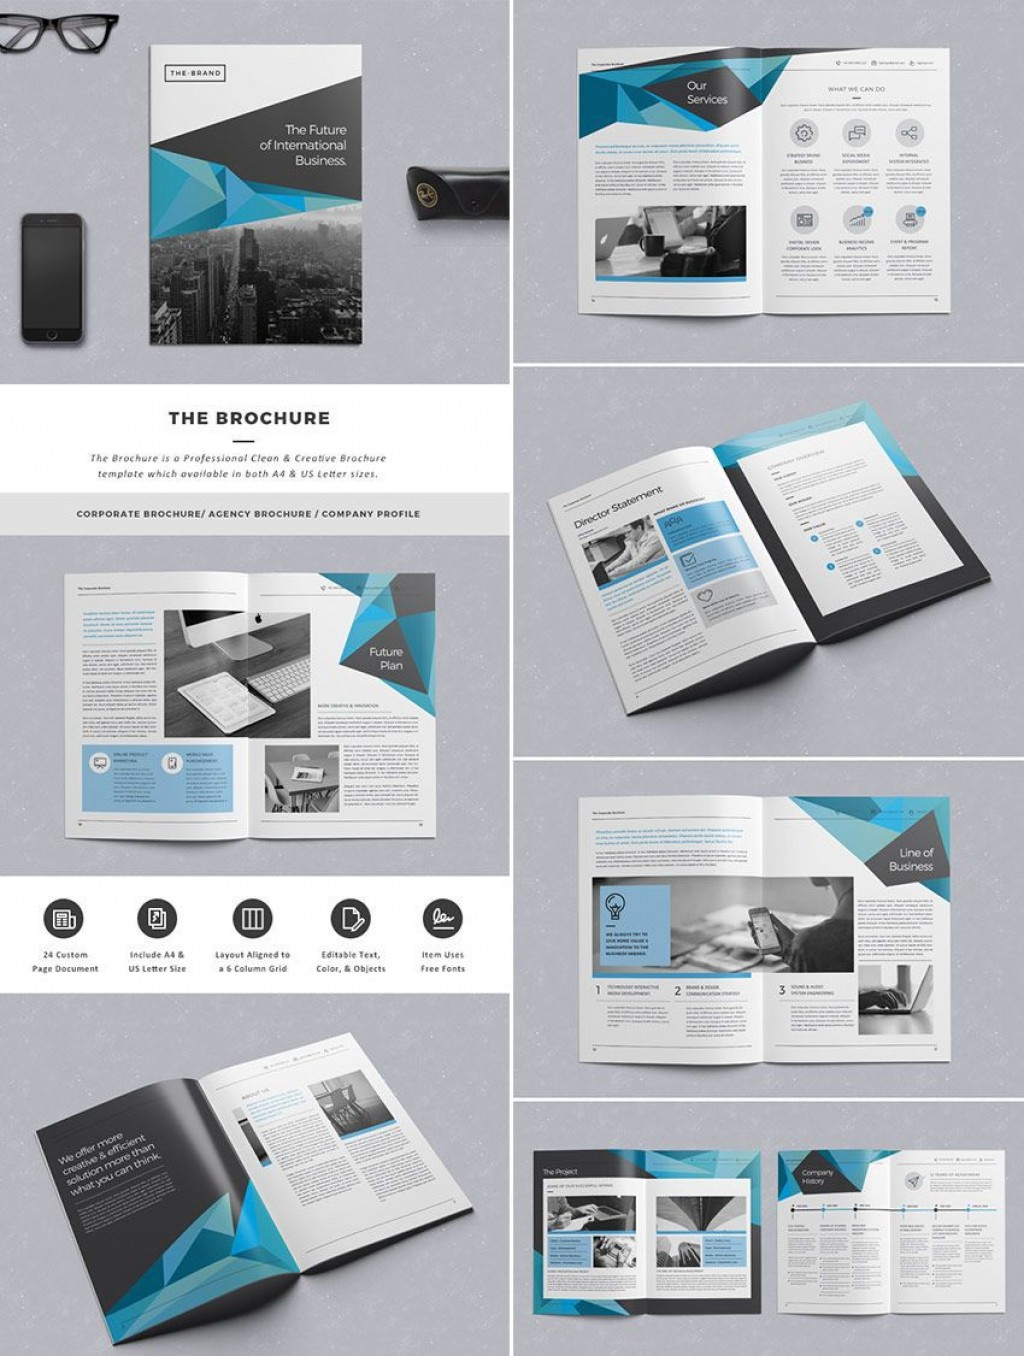 004 Incredible Adobe Indesign Brochure Template Free Download Image Large